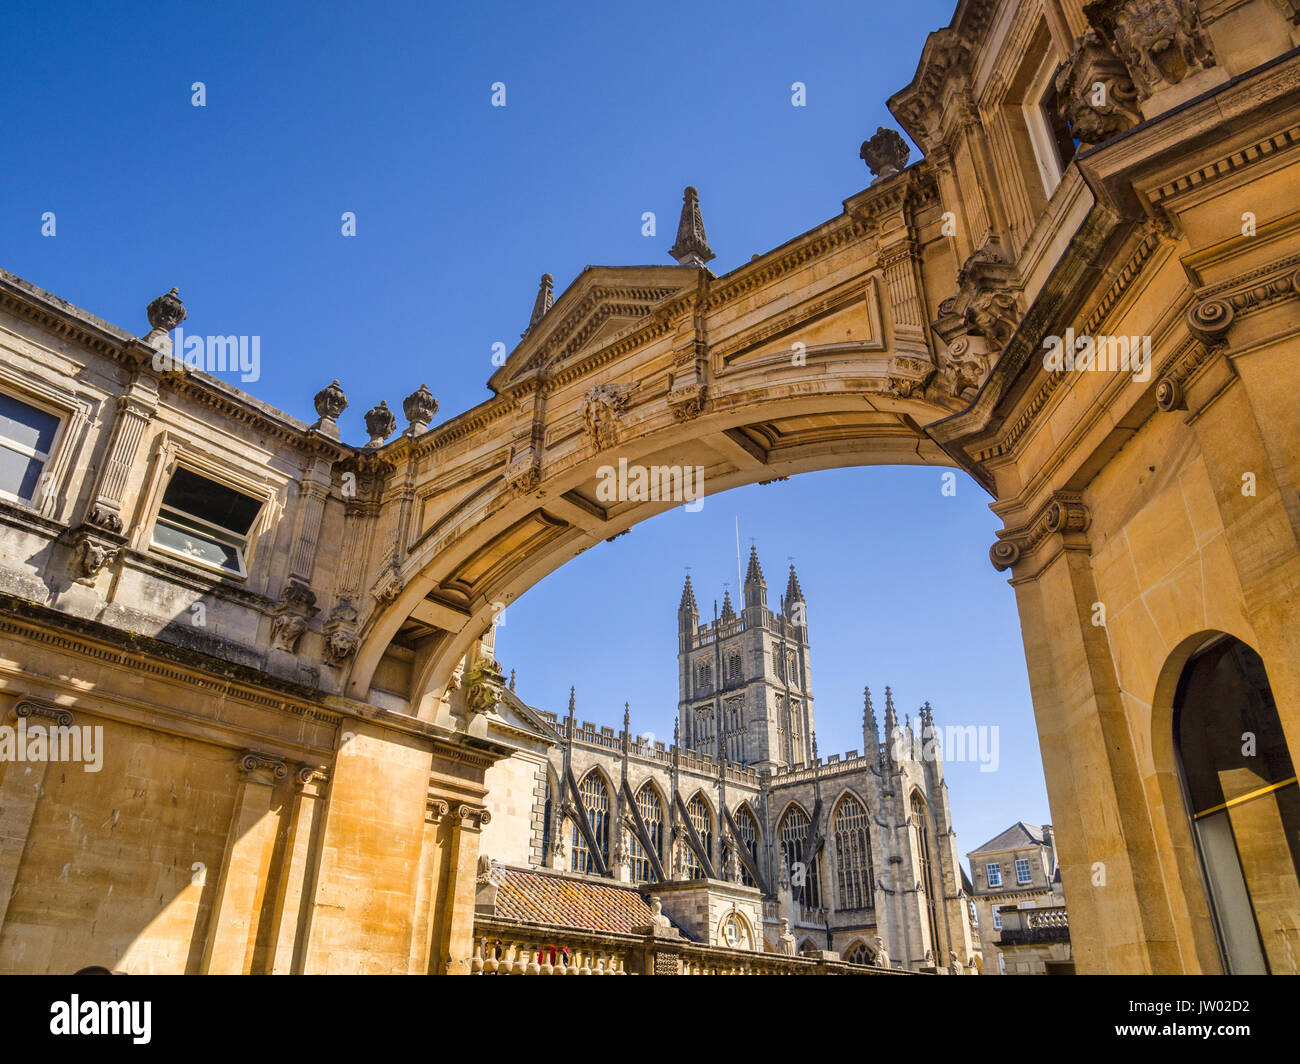 Bath, Somerset, England, UK - Bath Abbey seen through the York Street Arch. Stock Photo